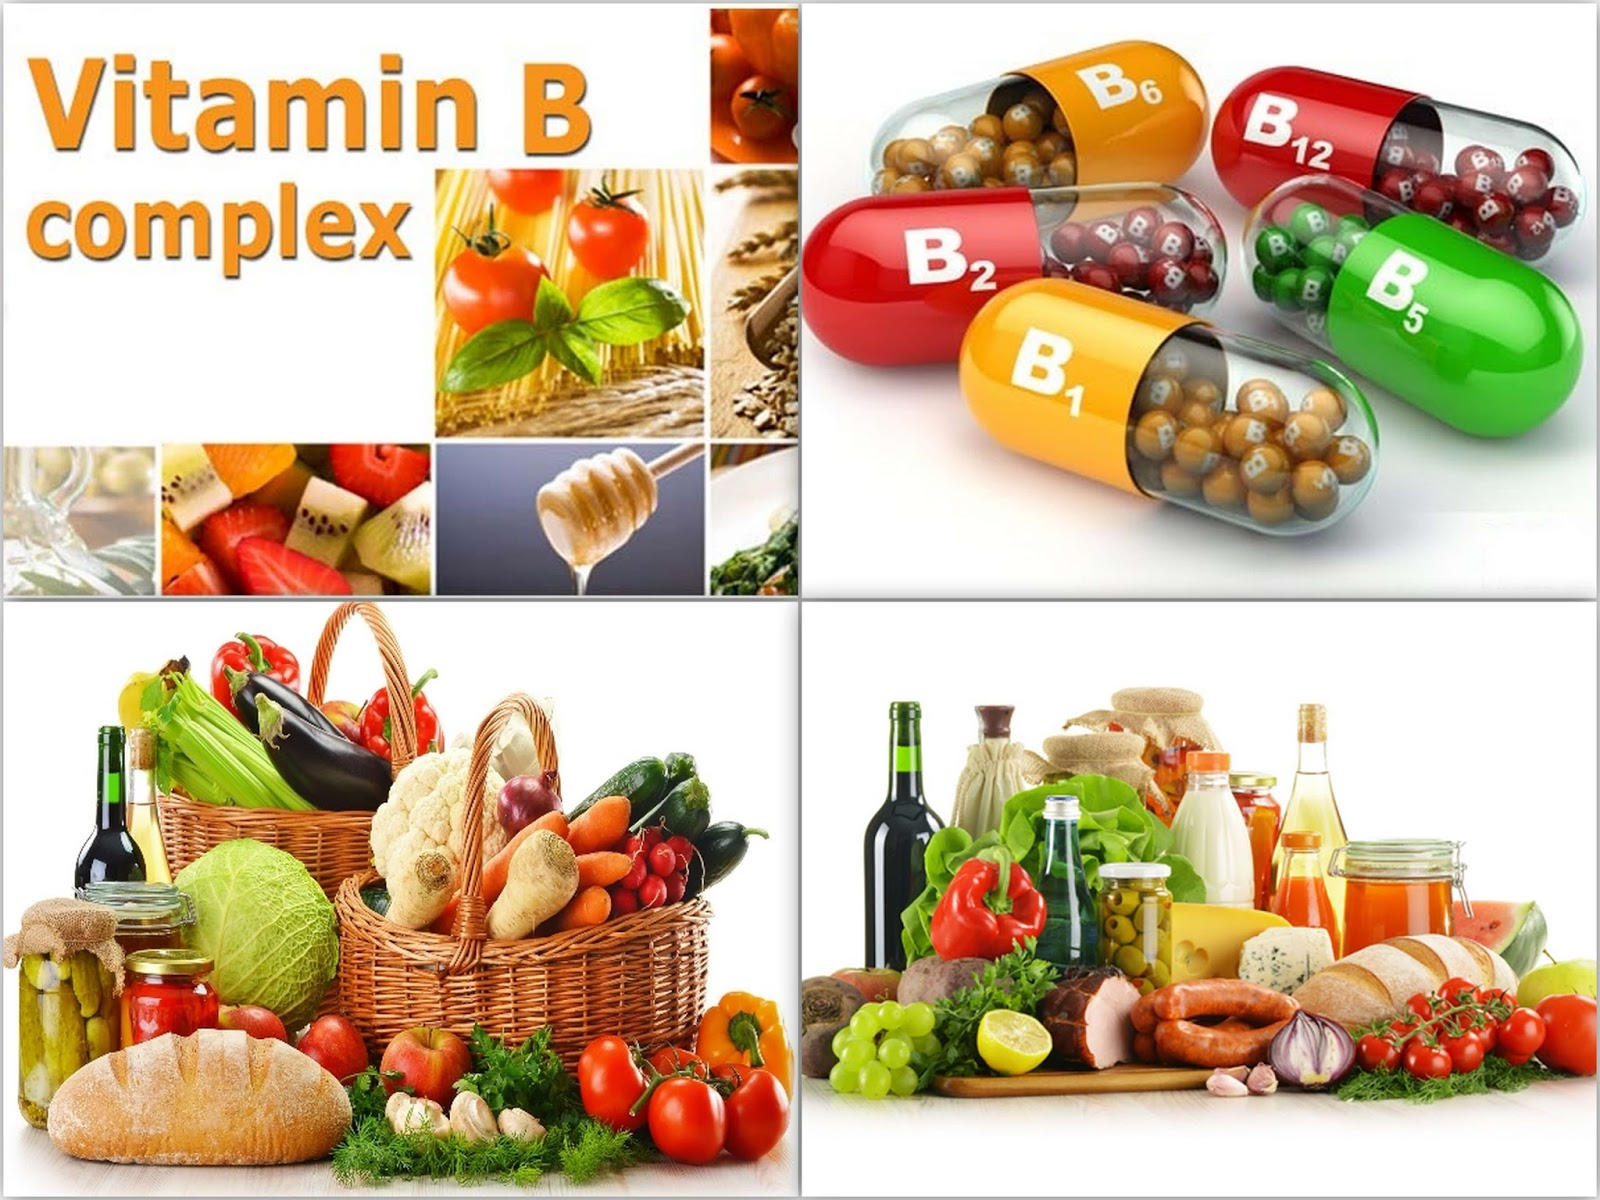 Natural%2BSources%2Bof%2BVitamin%2BB%2Bcomplex.jpg